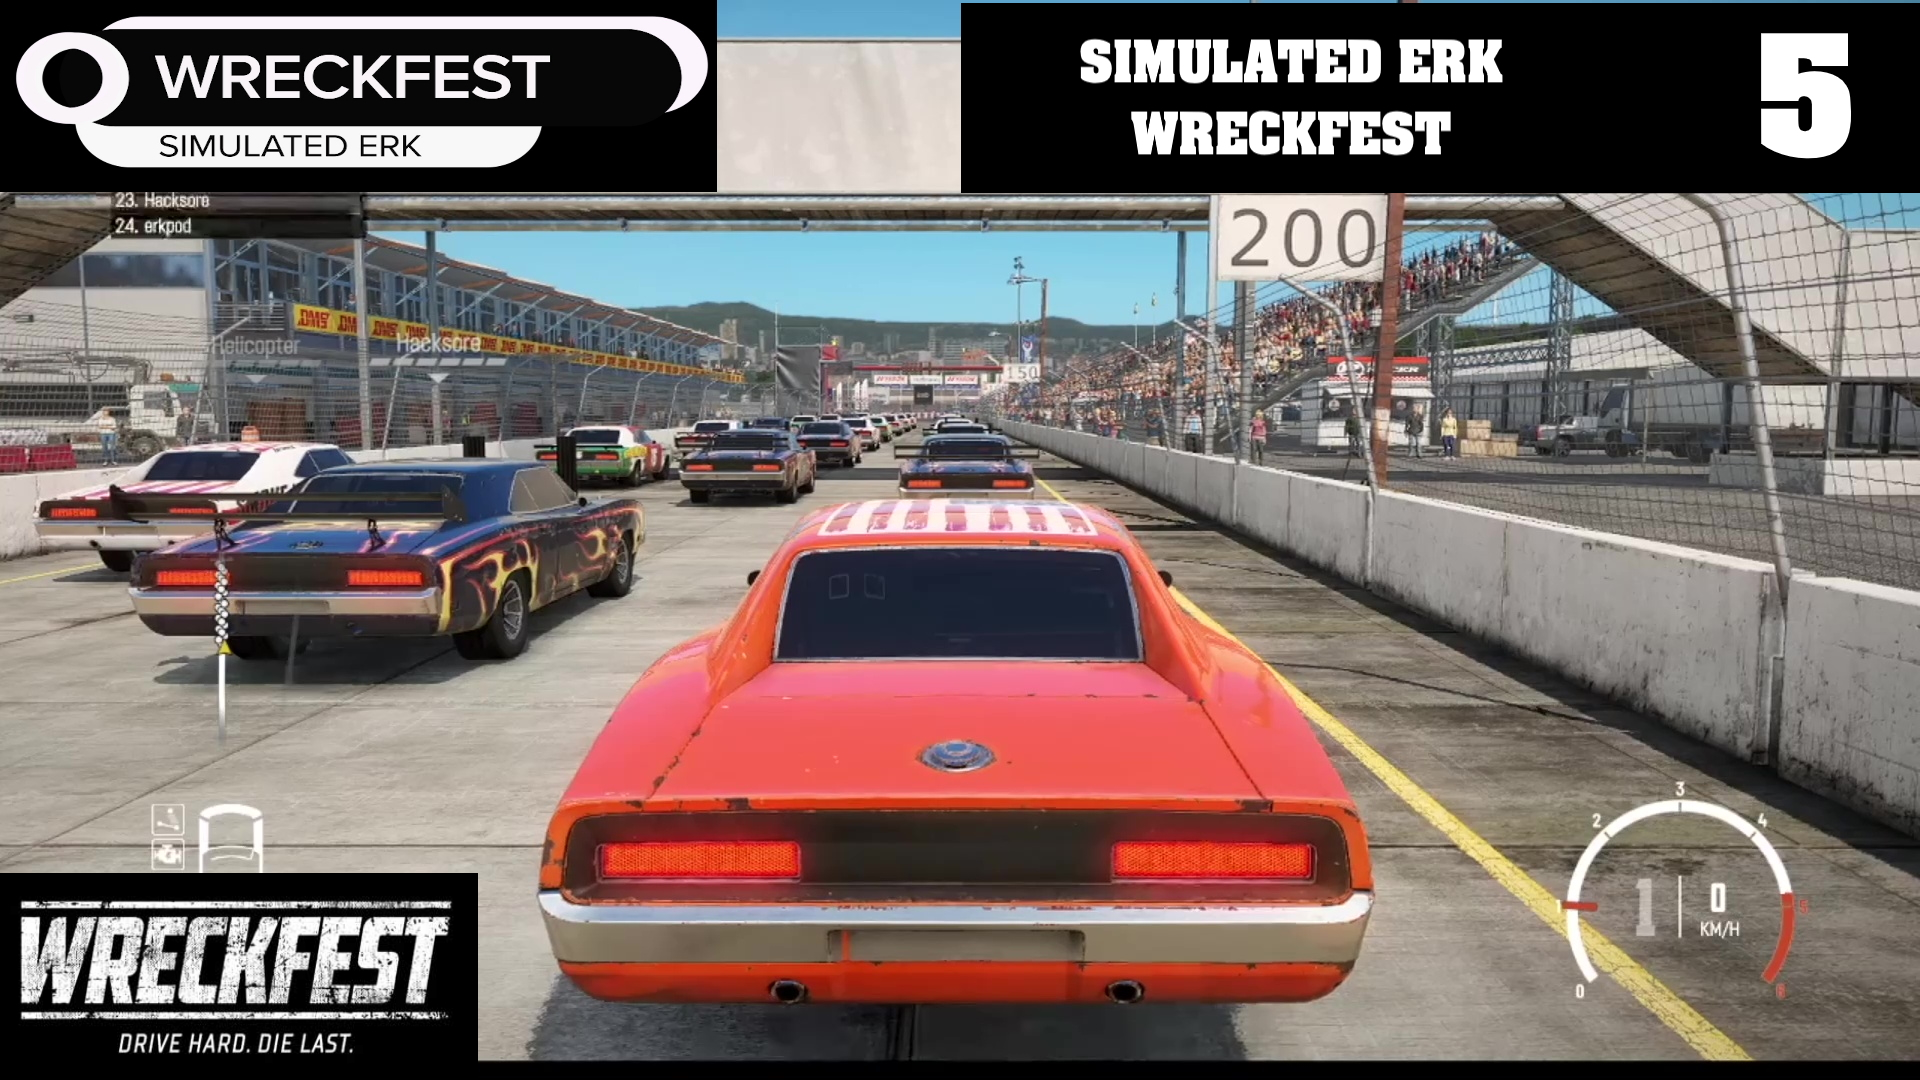 Simulated Erk: Wreckfest episode 5 | Much Better Than Turning To The Left